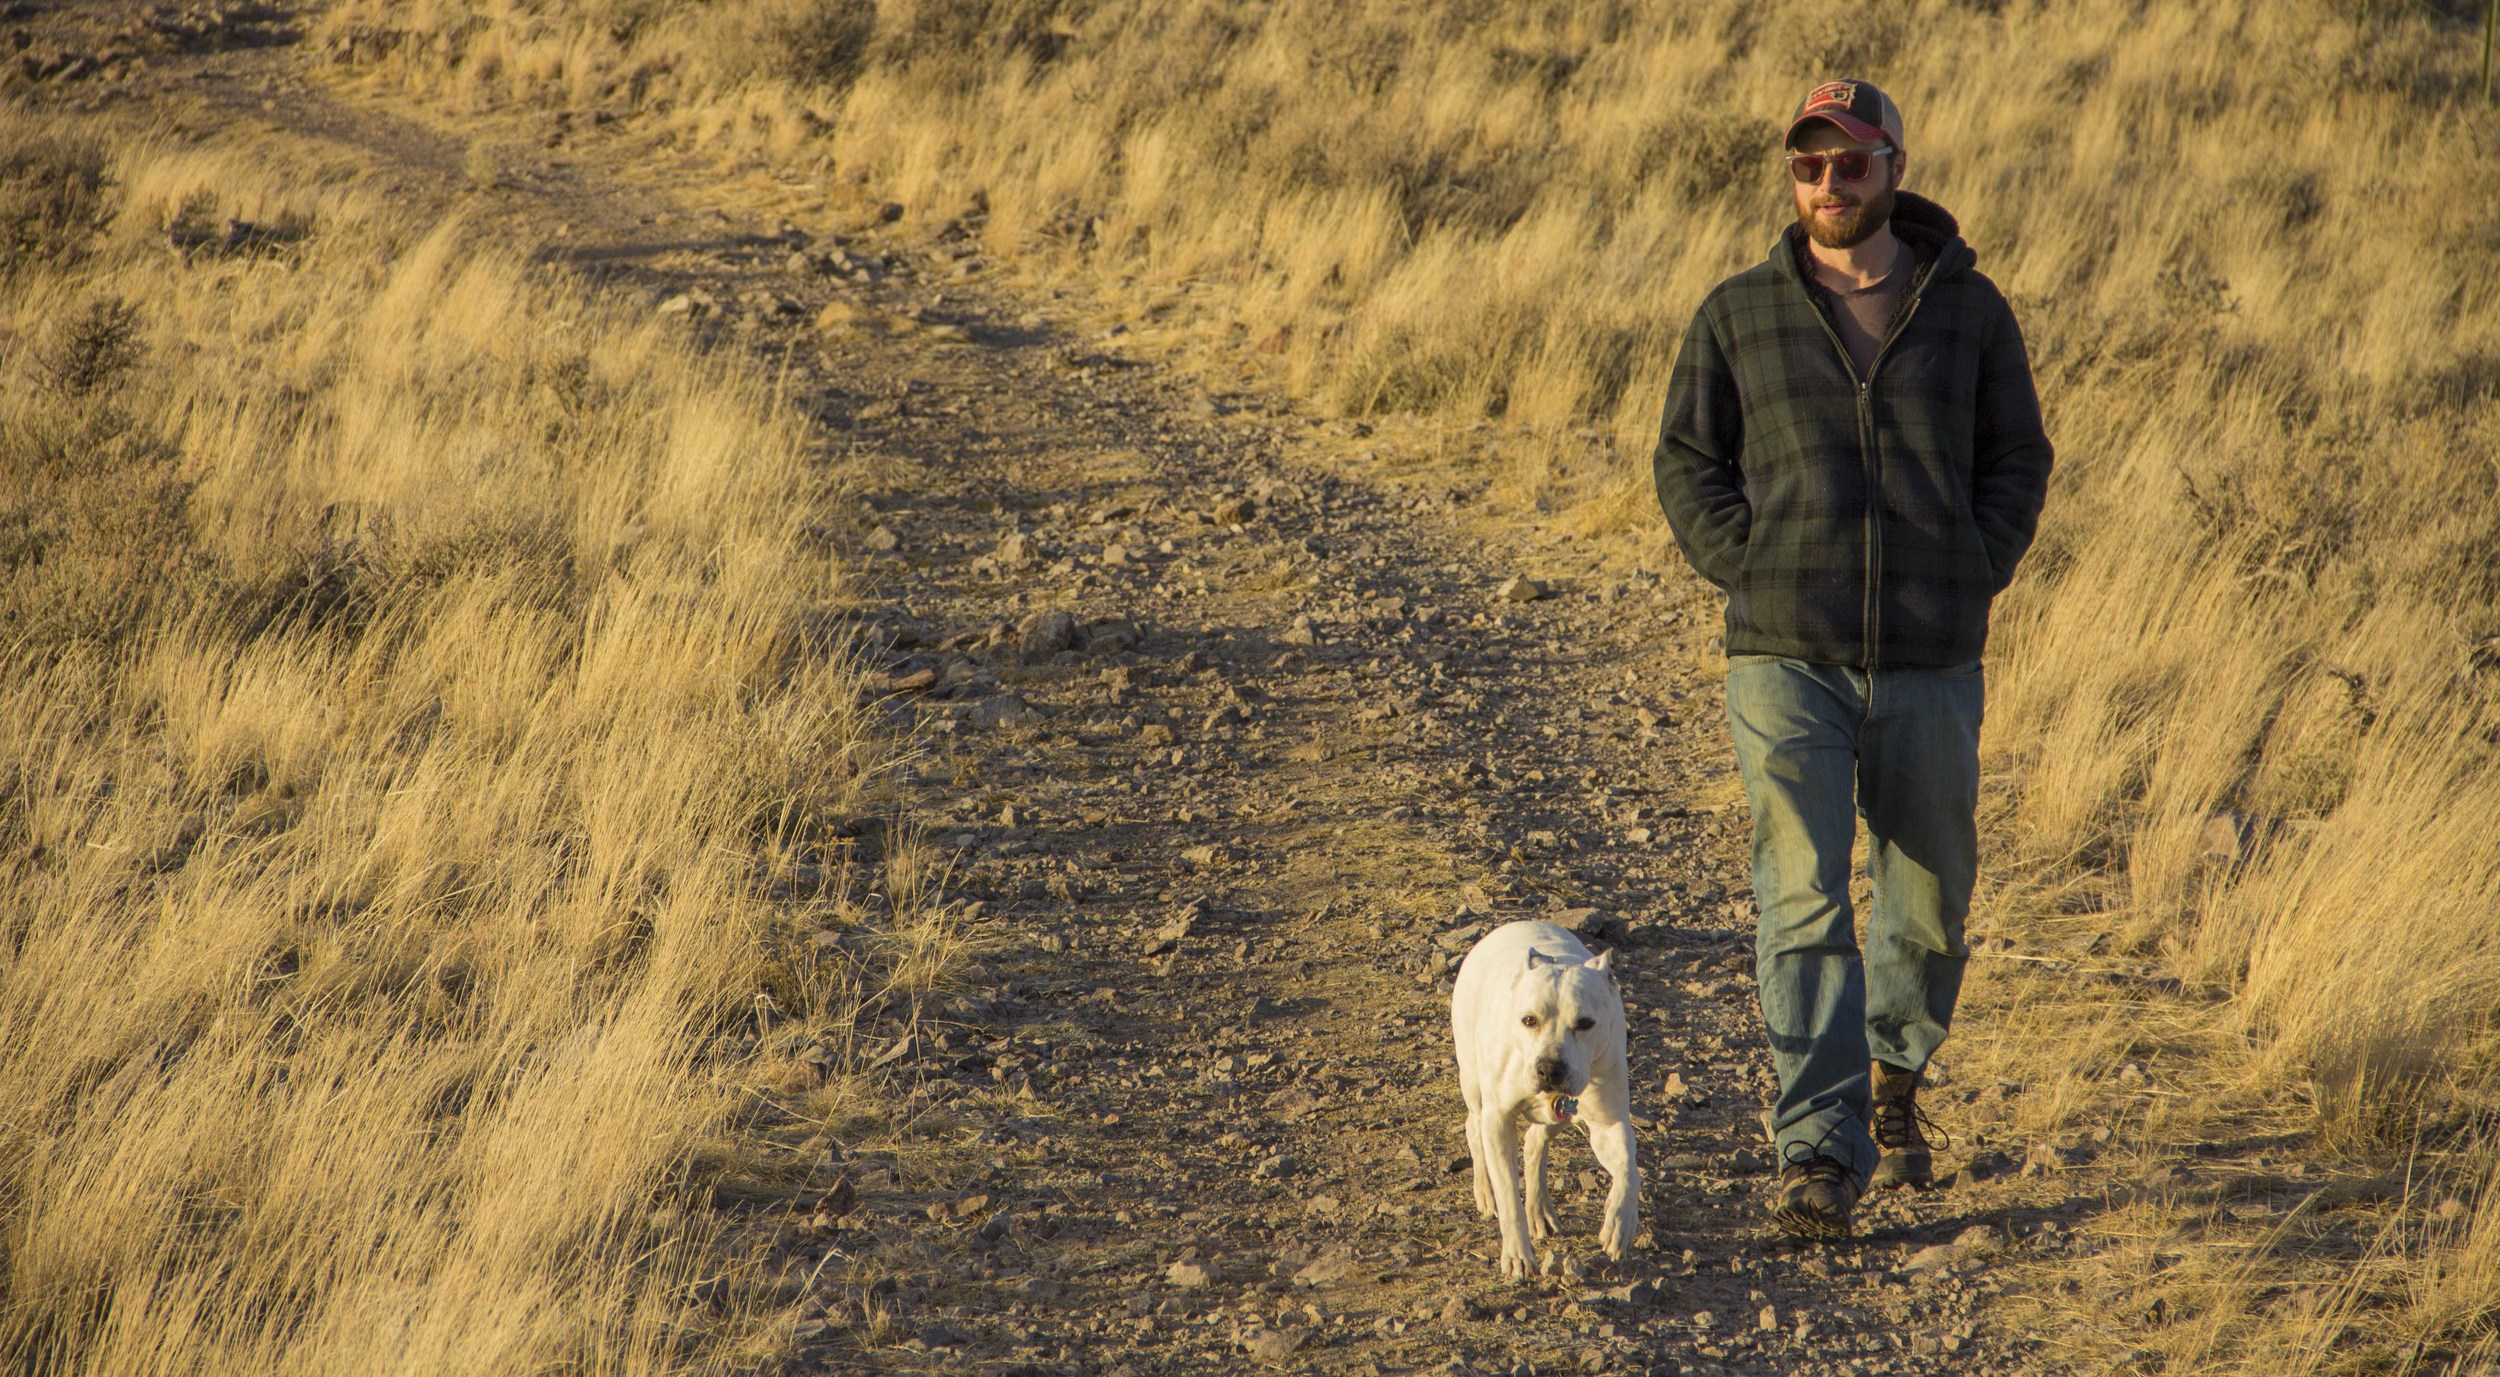 Chris Carparelli and his dog Jibz hiking along the Dillon Town Overlook Trail